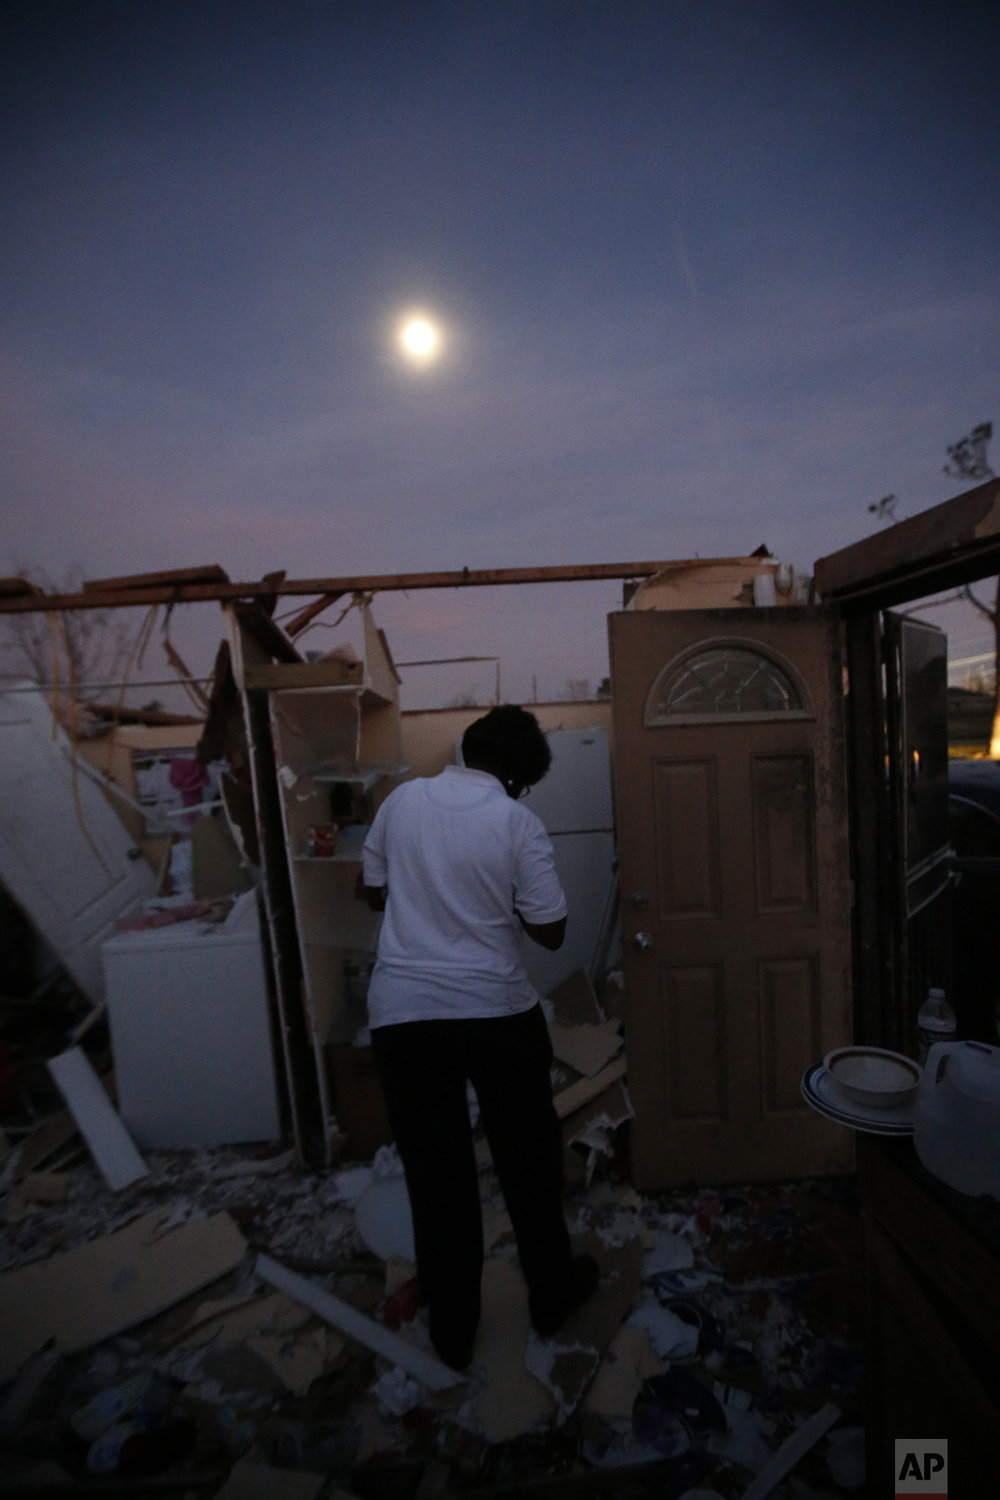 With a moon rising overhead, Theresa Perkins retrieves some belongings from inside of the destroyed home of her friend, Thelma Packnett, in the aftermath of Tuesday's tornado that tore through the New Orleans East section of New Orleans, Wednesday, Feb. 8, 2017. (AP Photo/Gerald Herbert)